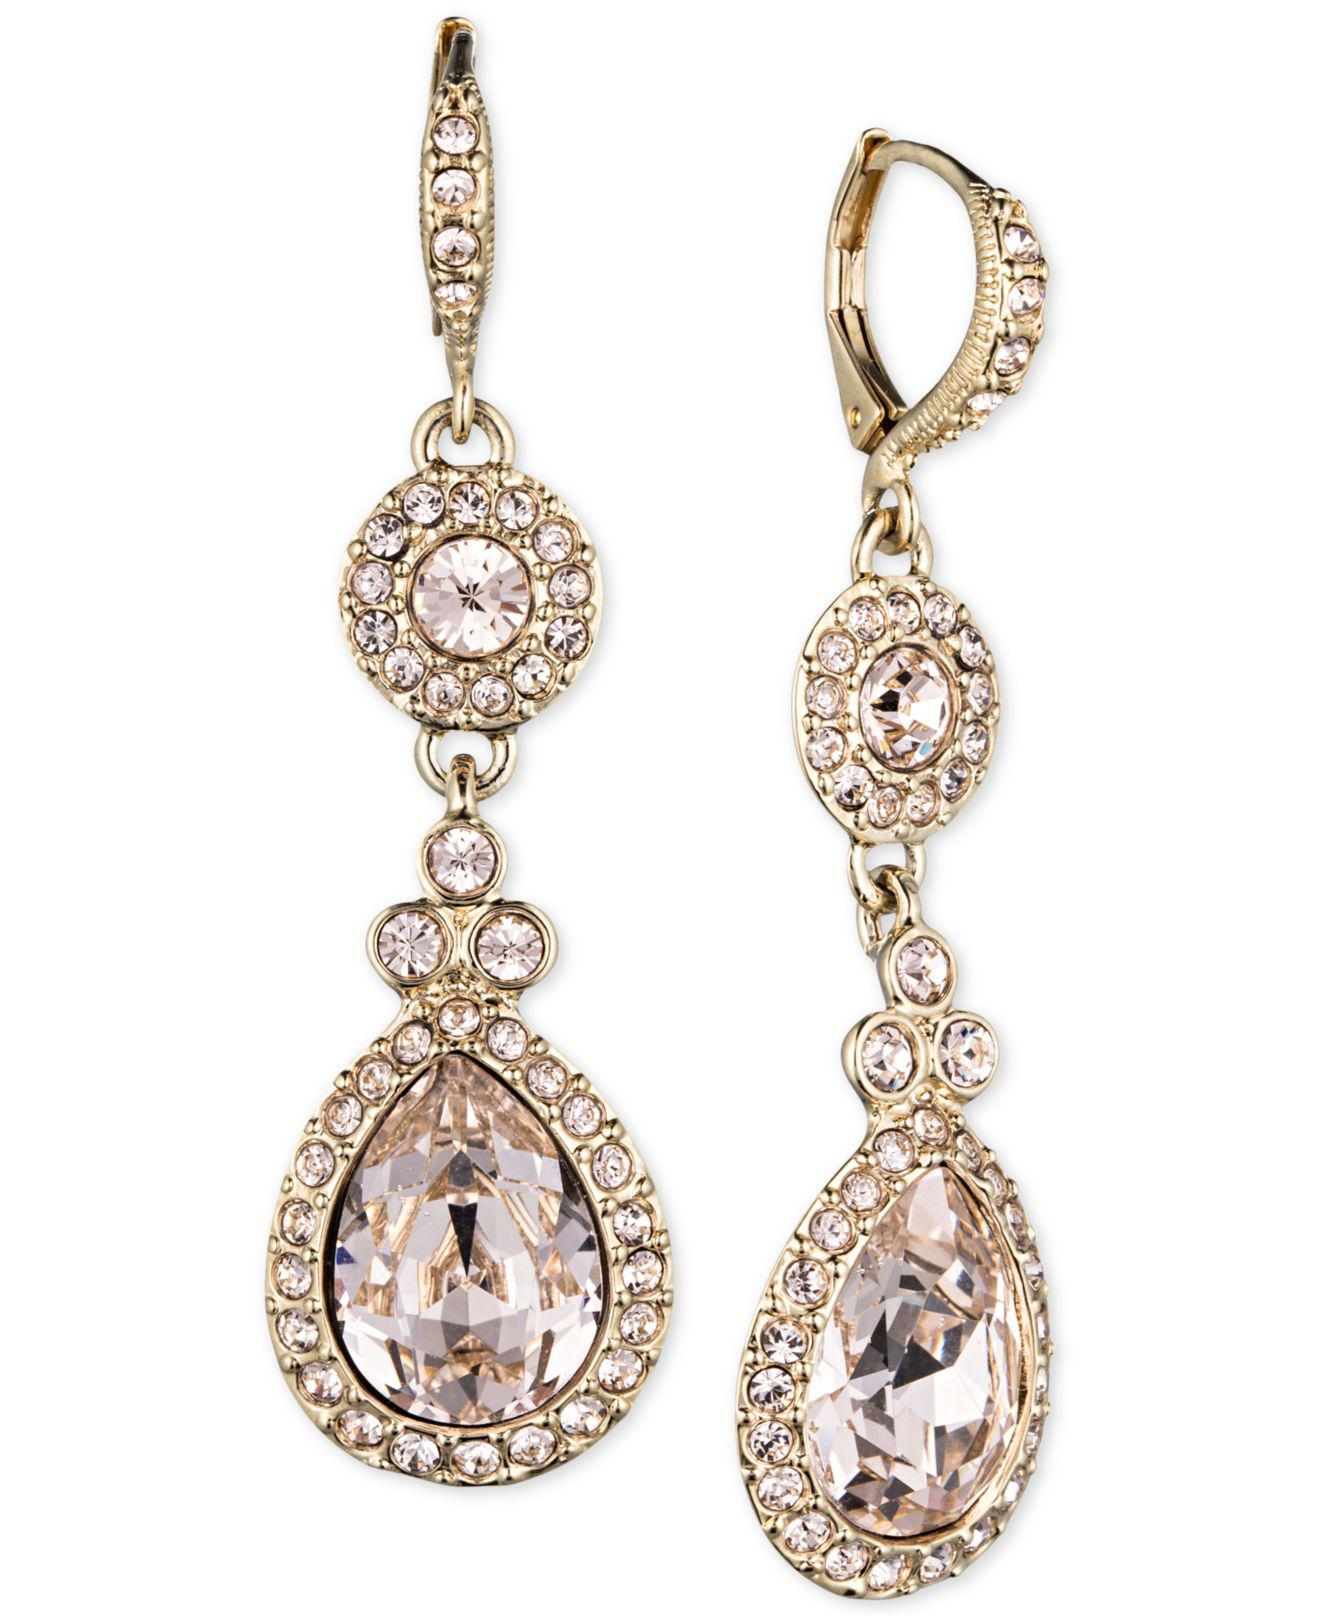 Givenchy Gold And Silver-tone Earrings m5jYXnridW